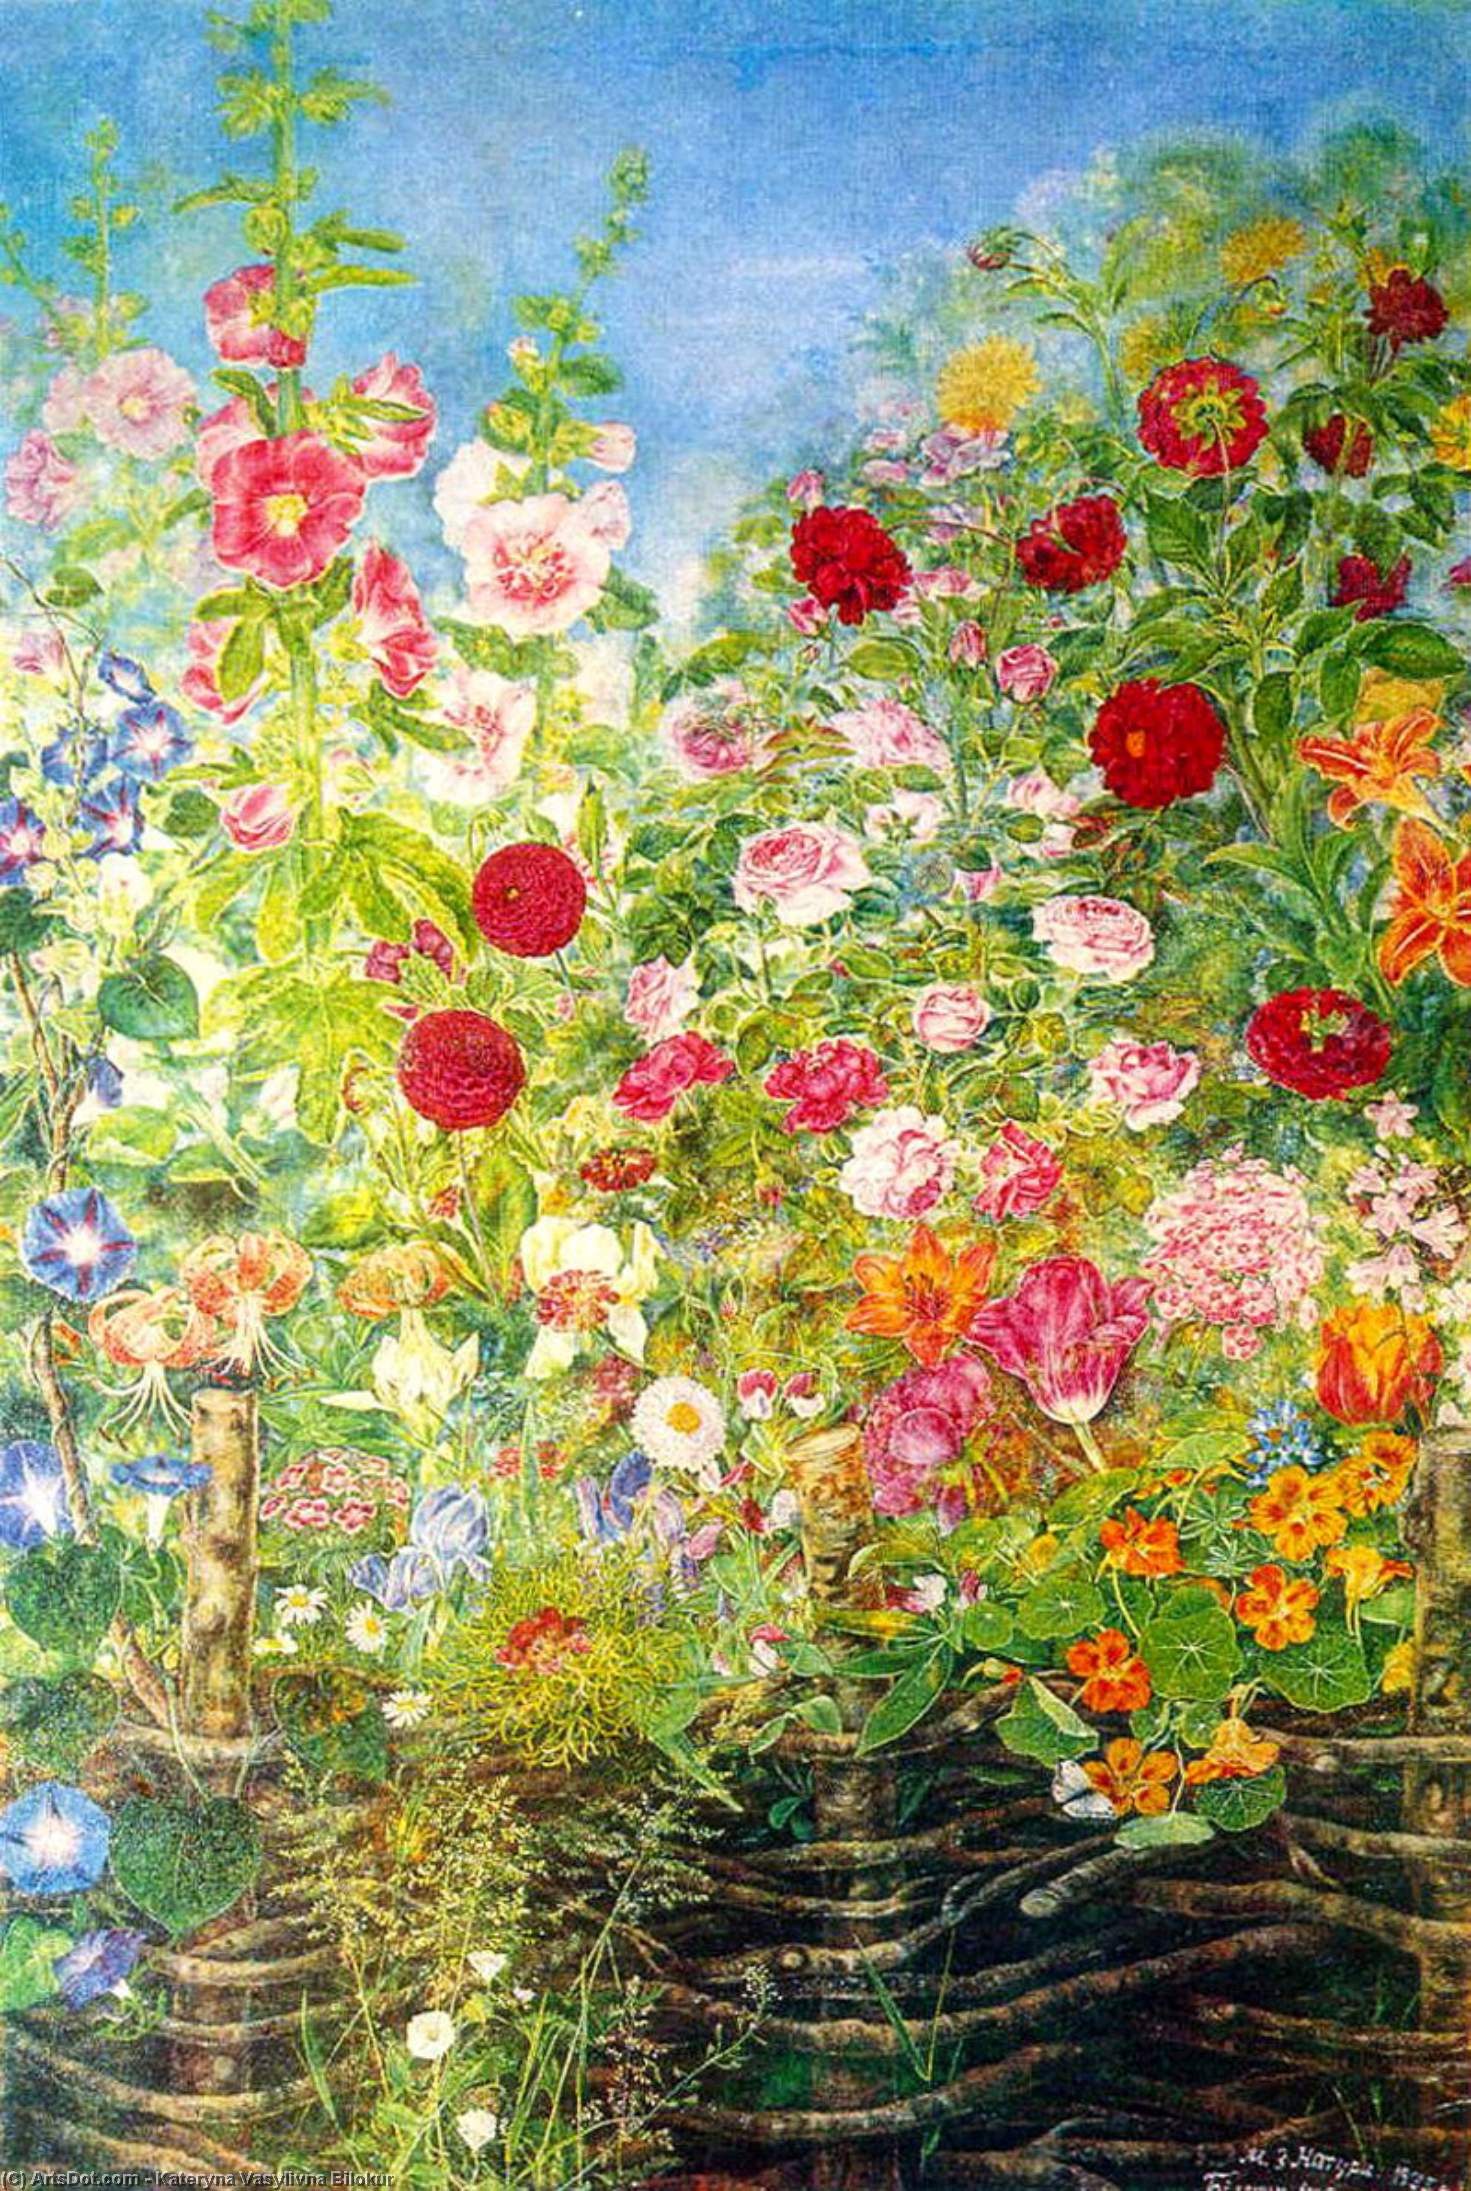 Flowers by the fence, 1935 by Kateryna Vasylivna Bilokur (1900-1961, Ukraine)